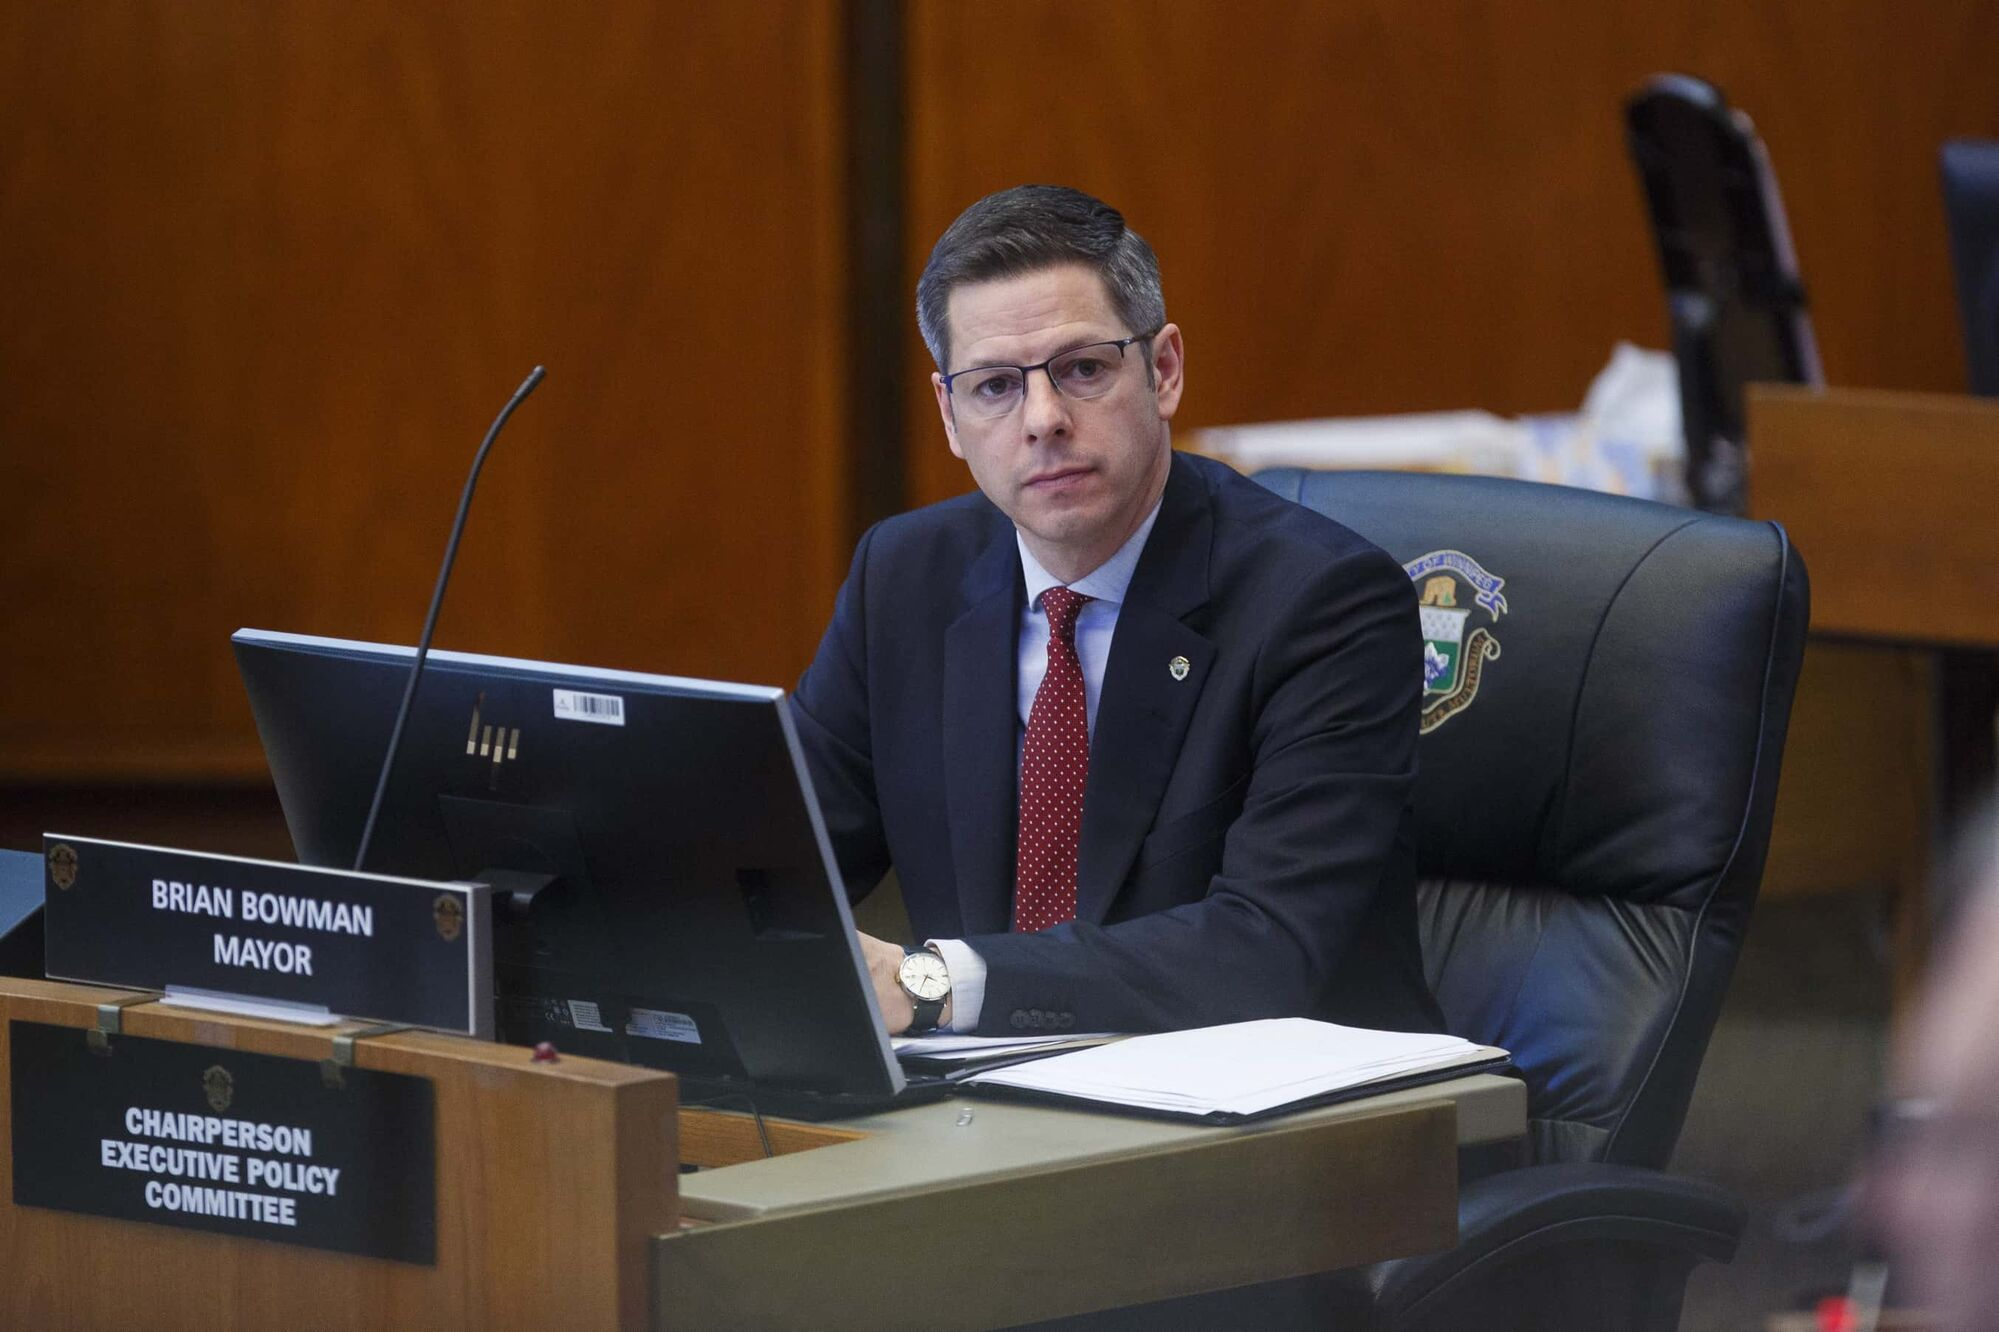 The City of Winnipeg's executive policy committee passed a motion that all direct city employees be paid a wage of at least $15 per hour by 2023. The province's minimum wage is currently $11.65 per hour. (Mike Deal / Winnipeg Free Press files)